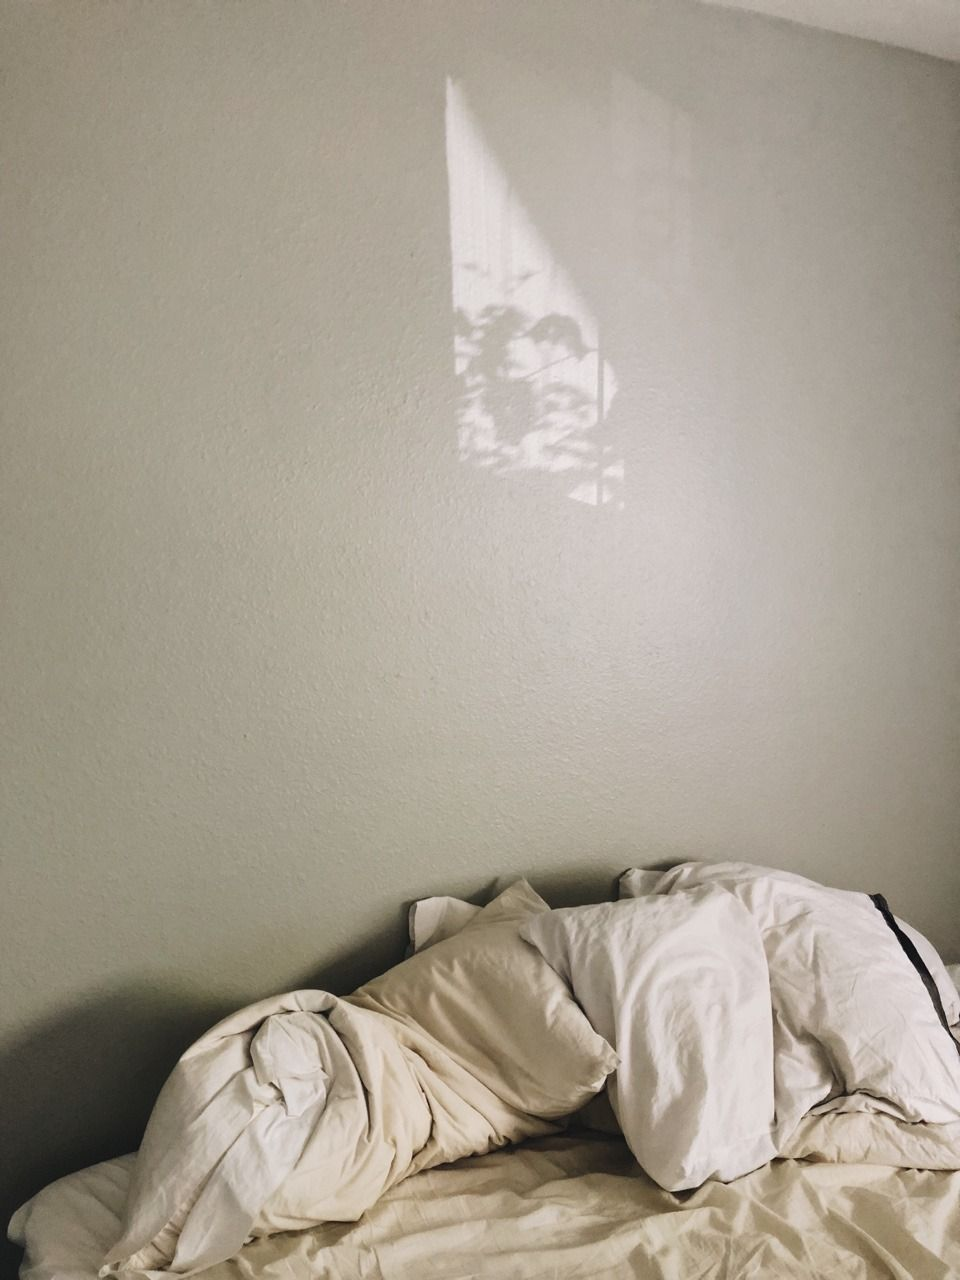 Pin by 𝔅𝔞𝔟𝔶ˎˊ˗ on ʀᴏᴏᴍs Unmade bed, Stay in bed, Sheets